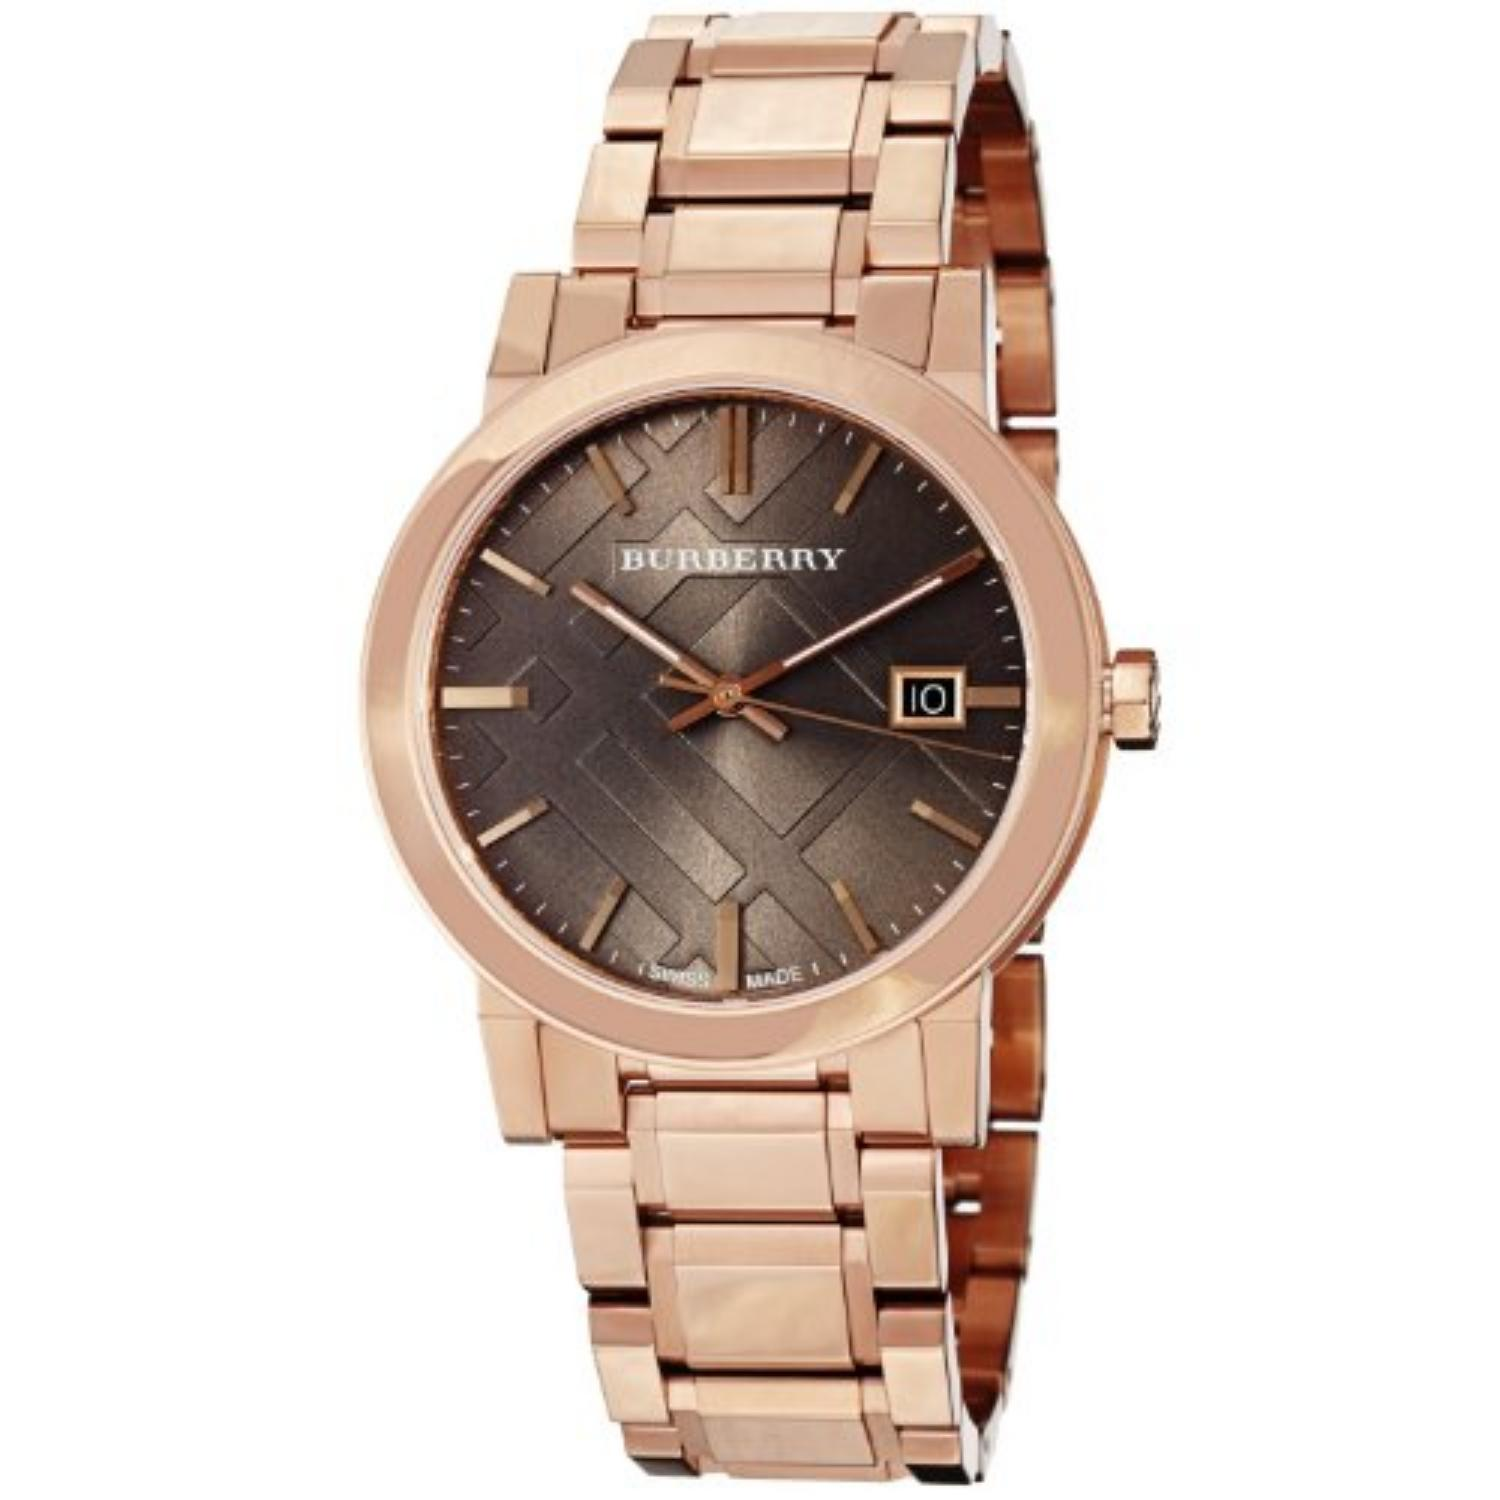 Burberry Rose Gold Unisex Bu9005 Watch from Ghada H. on ...